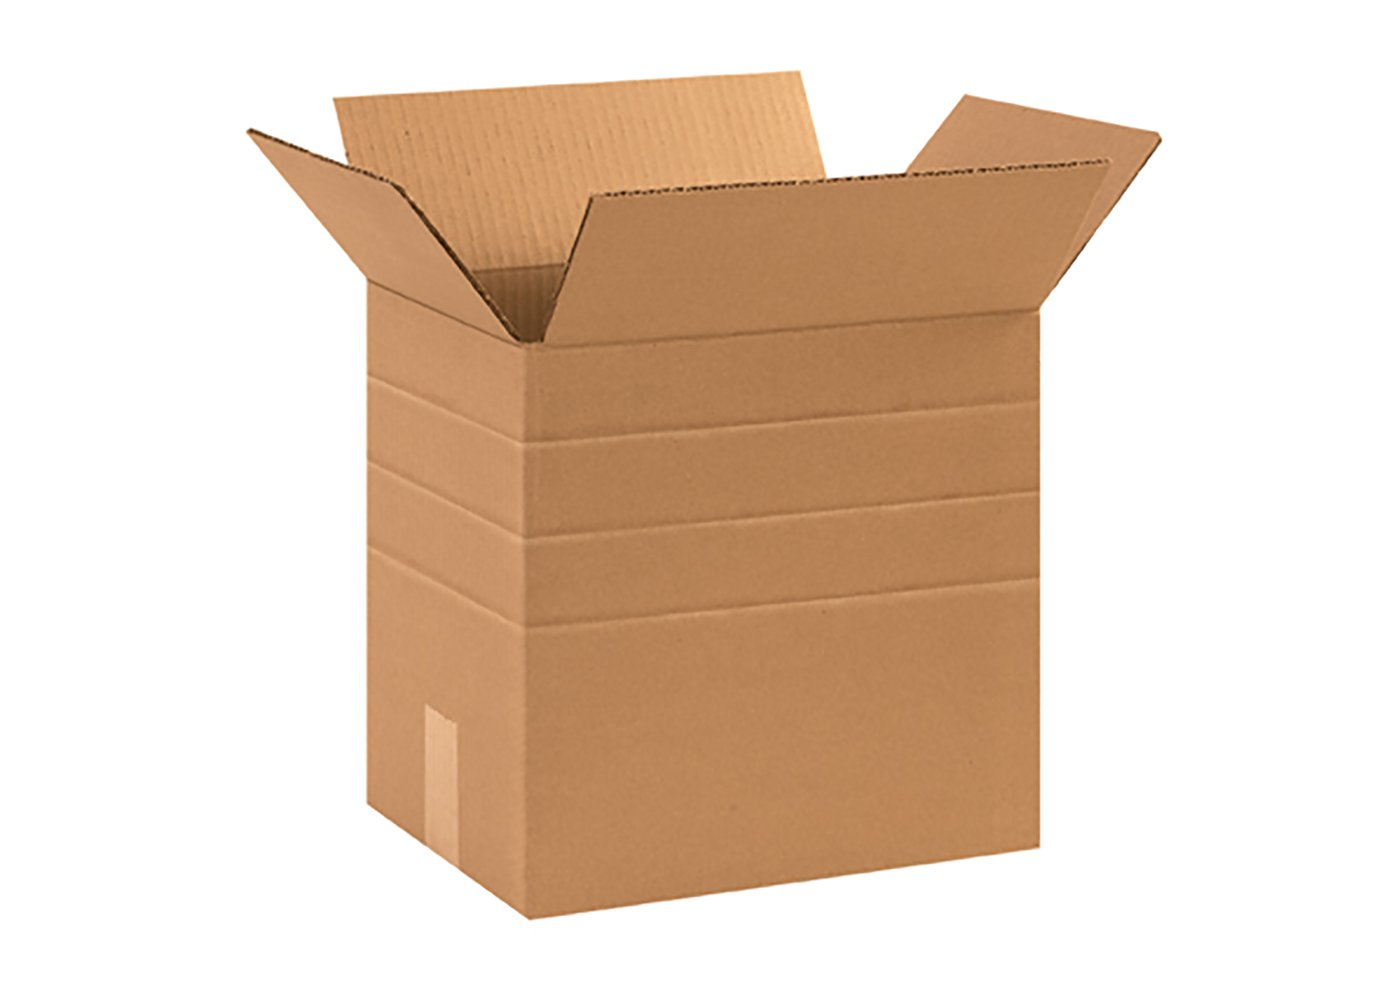 RetailSource B131012MD300 Multi-Depth Corrugated Box, 12'' Height, 10.25'' Width, 13.25'' Length, Brown (Pack of 300)